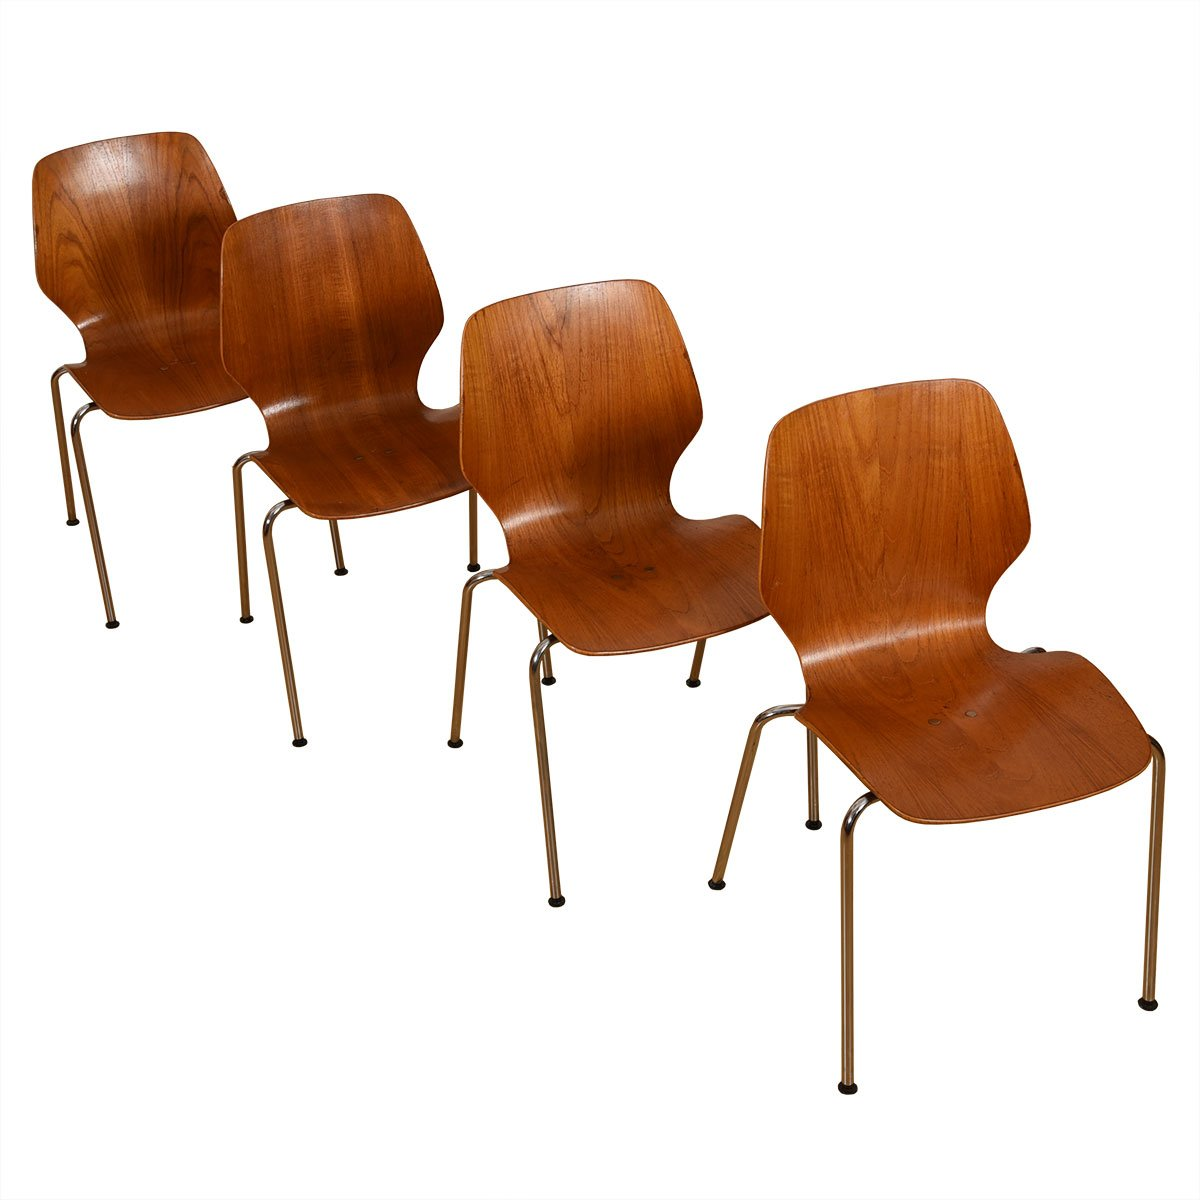 Stacking Set of 4 Iverson Teak + Chrome Leg Dining Chairs by Westnofa